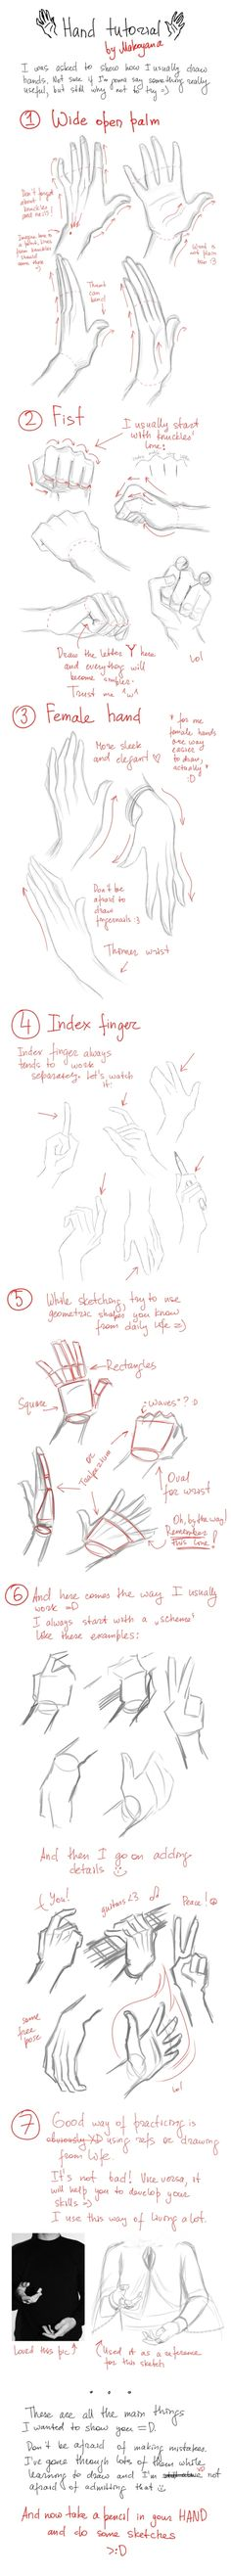 Hände zeichnen lernen Hands tutorial (Hands are the worst, this will definitely come in handy. No pun intended) Drawing Skills, Drawing Lessons, Drawing Techniques, Drawing Tutorials, Drawing Tips, Art Tutorials, Drawing Sketches, Painting & Drawing, Art Drawings